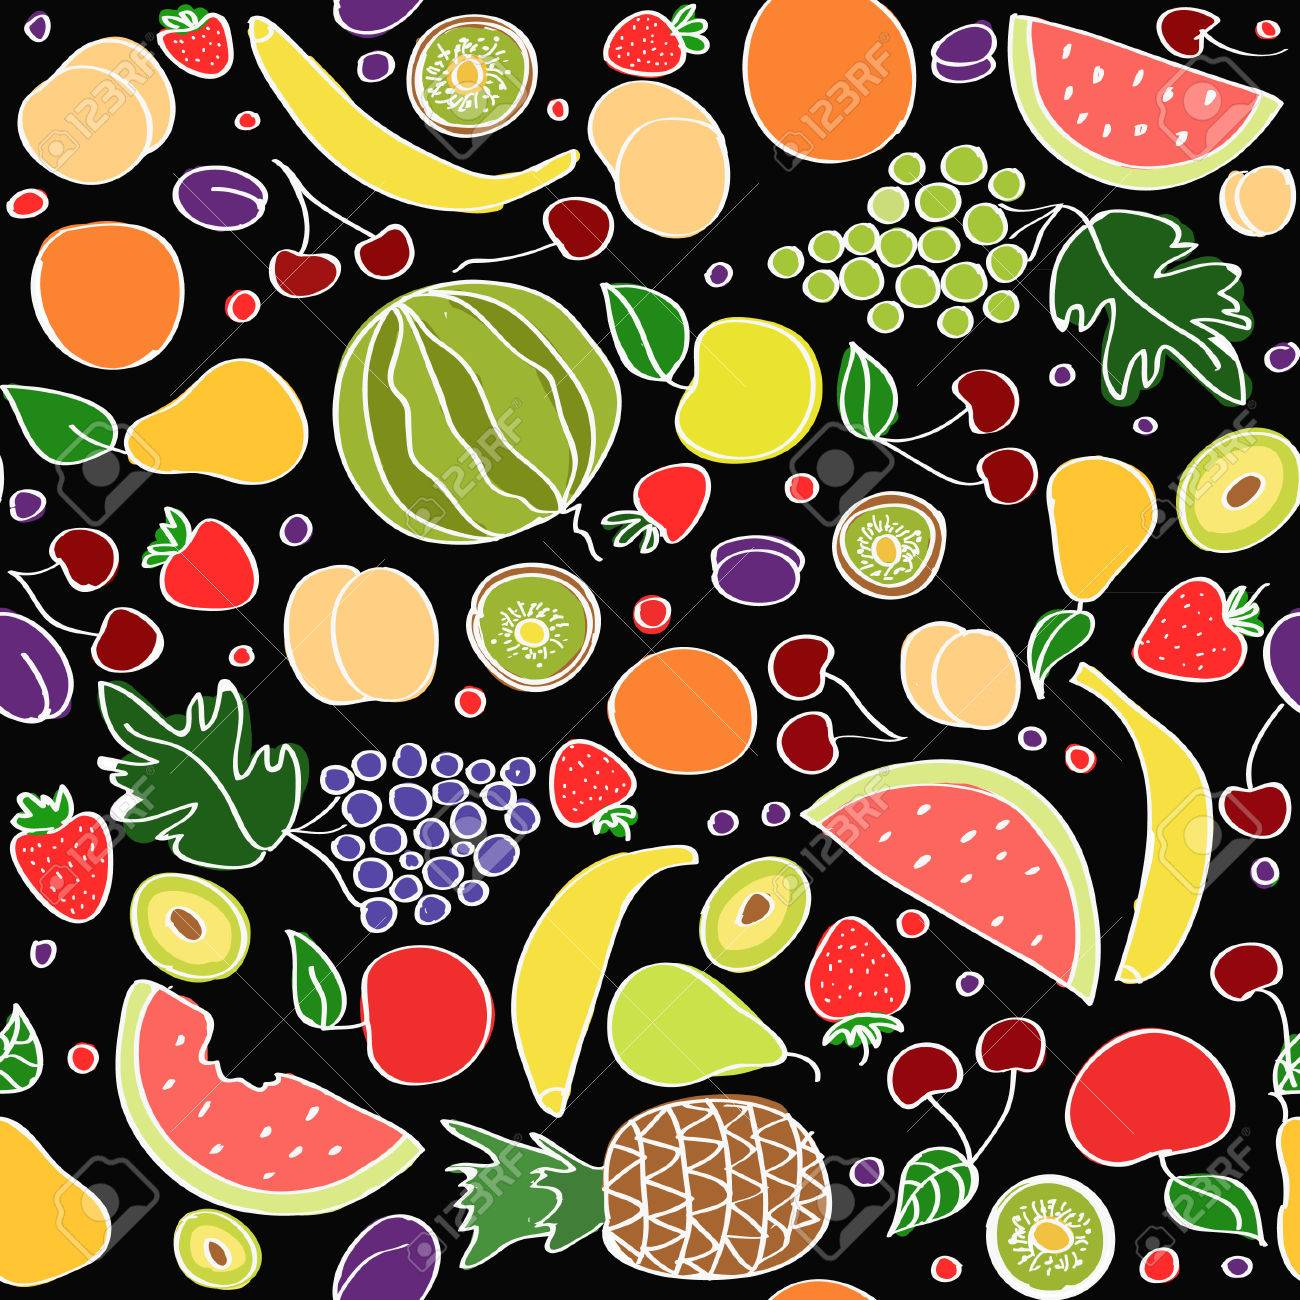 39771275-Seamless-vector-doodle-cartoon-pattern-of-summer-fruits-on-black-background-Stock-Vector